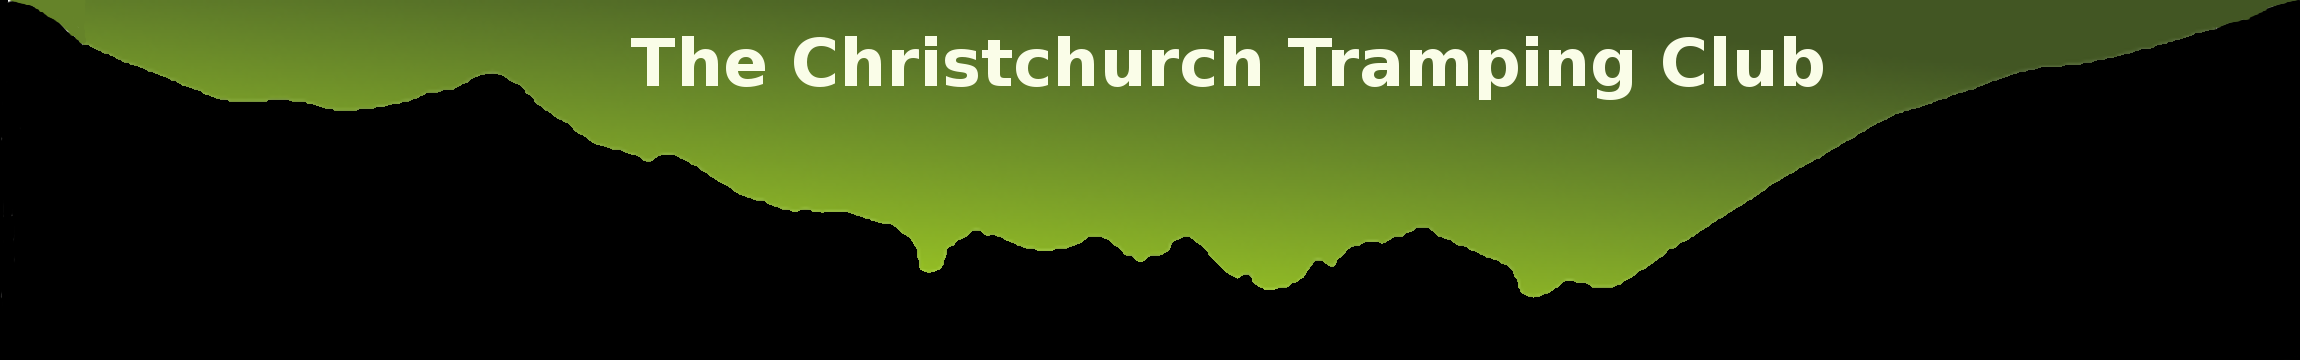 Christchurch Tramping Club